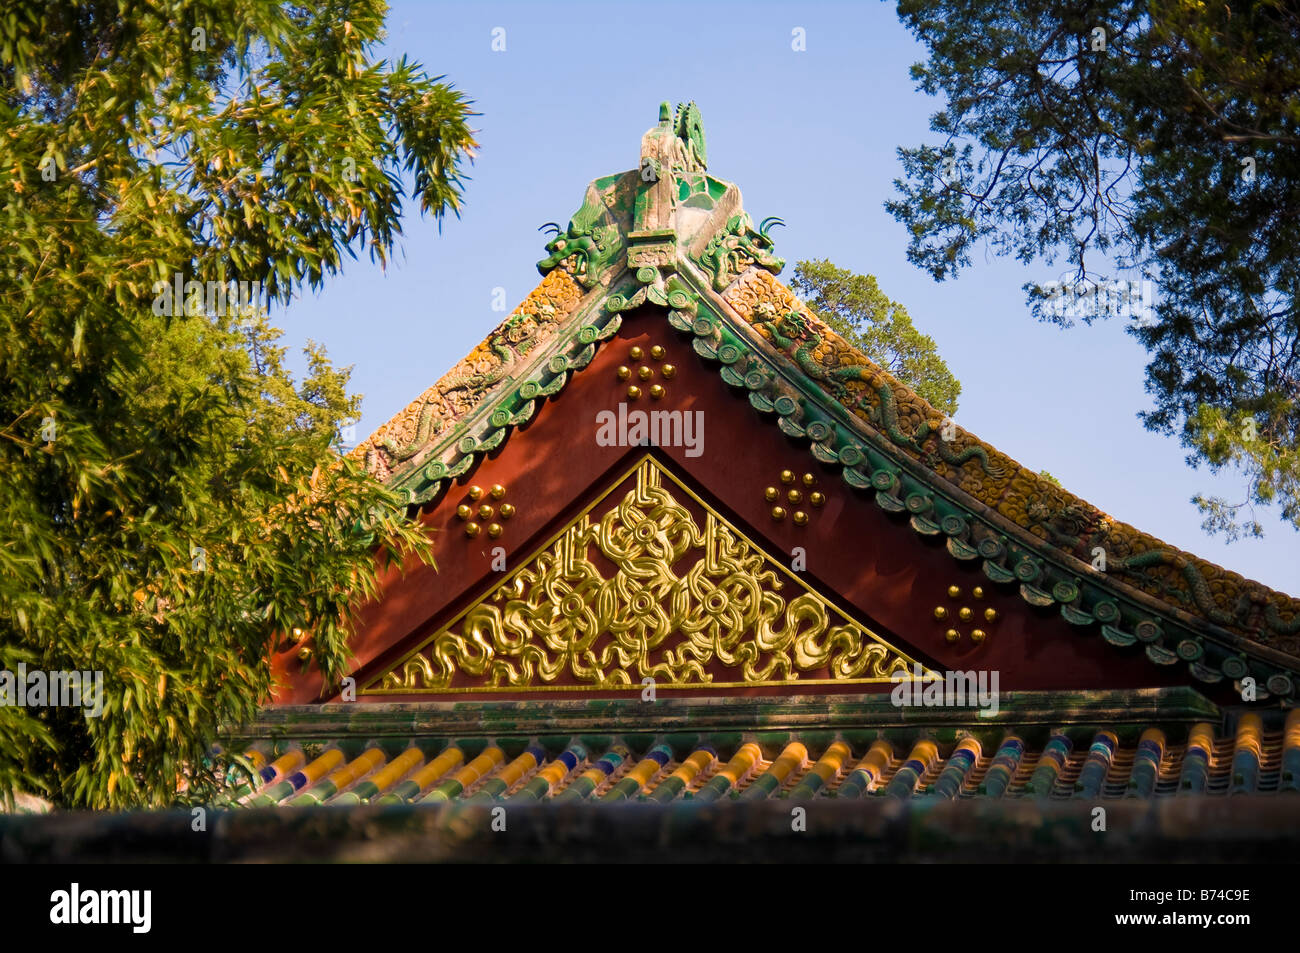 Heavenly Kings Temple Beihai Park Beijing P R of China - Stock Image